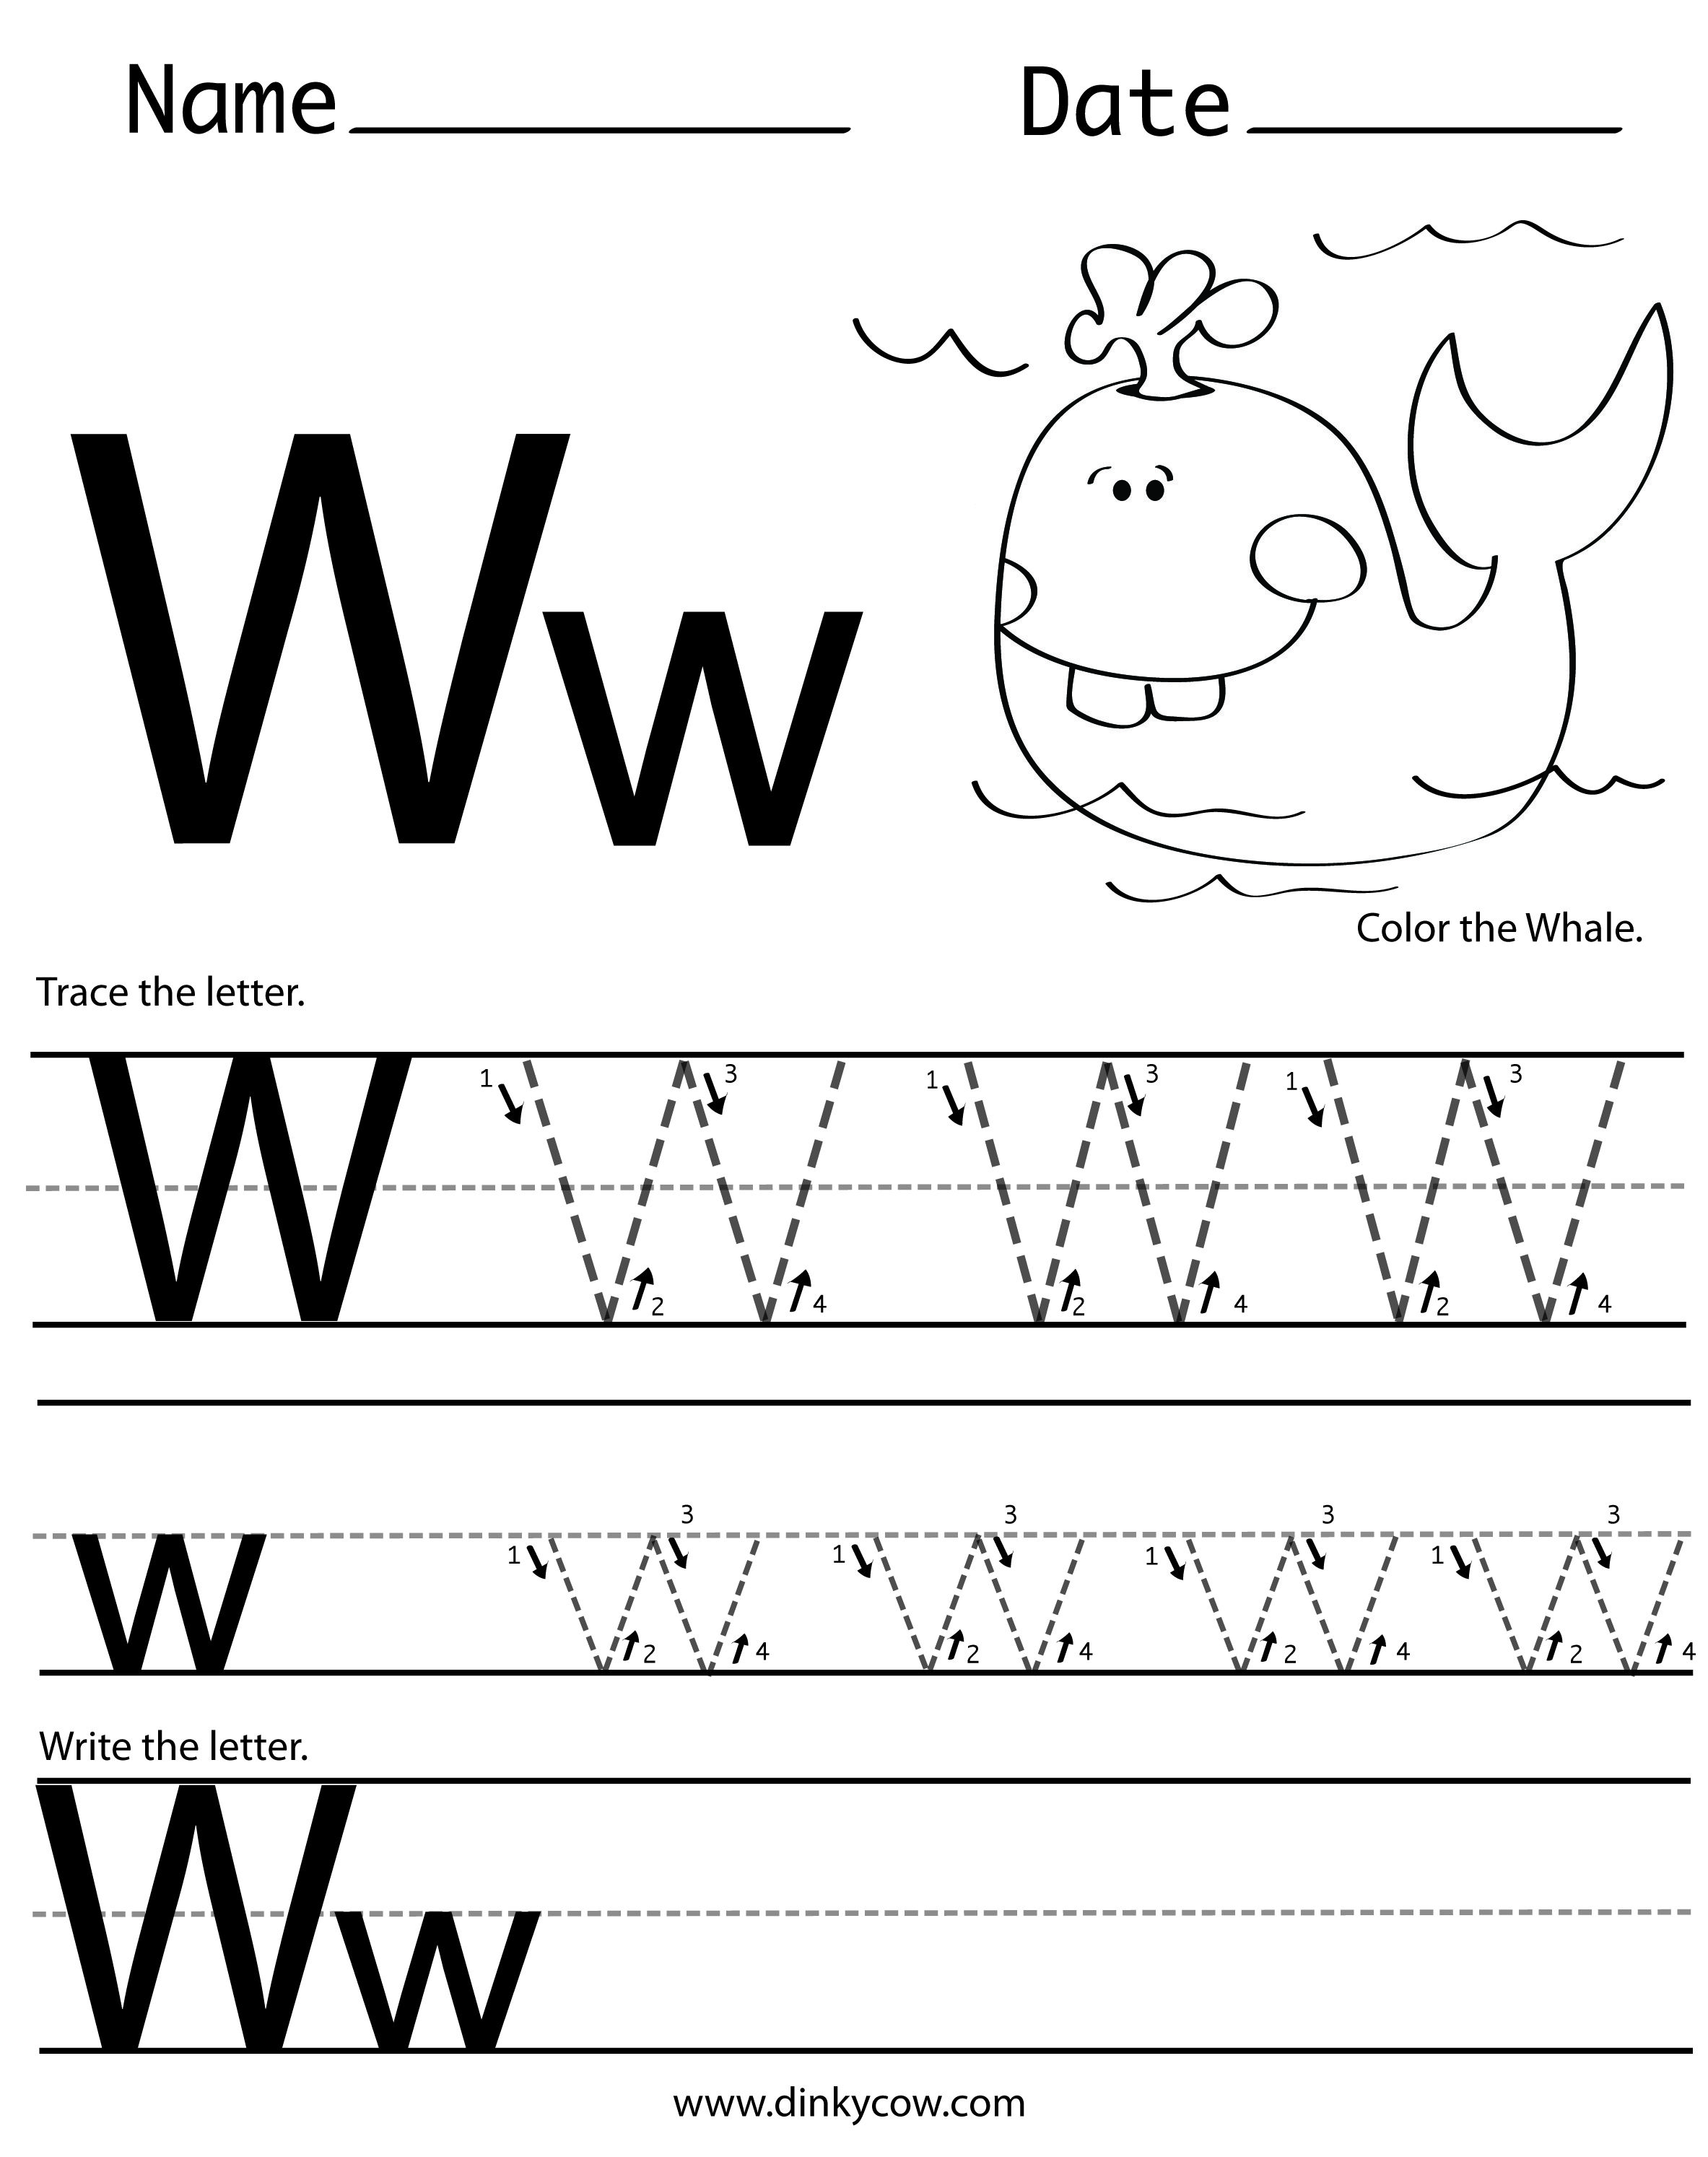 W free handwriting worksheet print g pixels